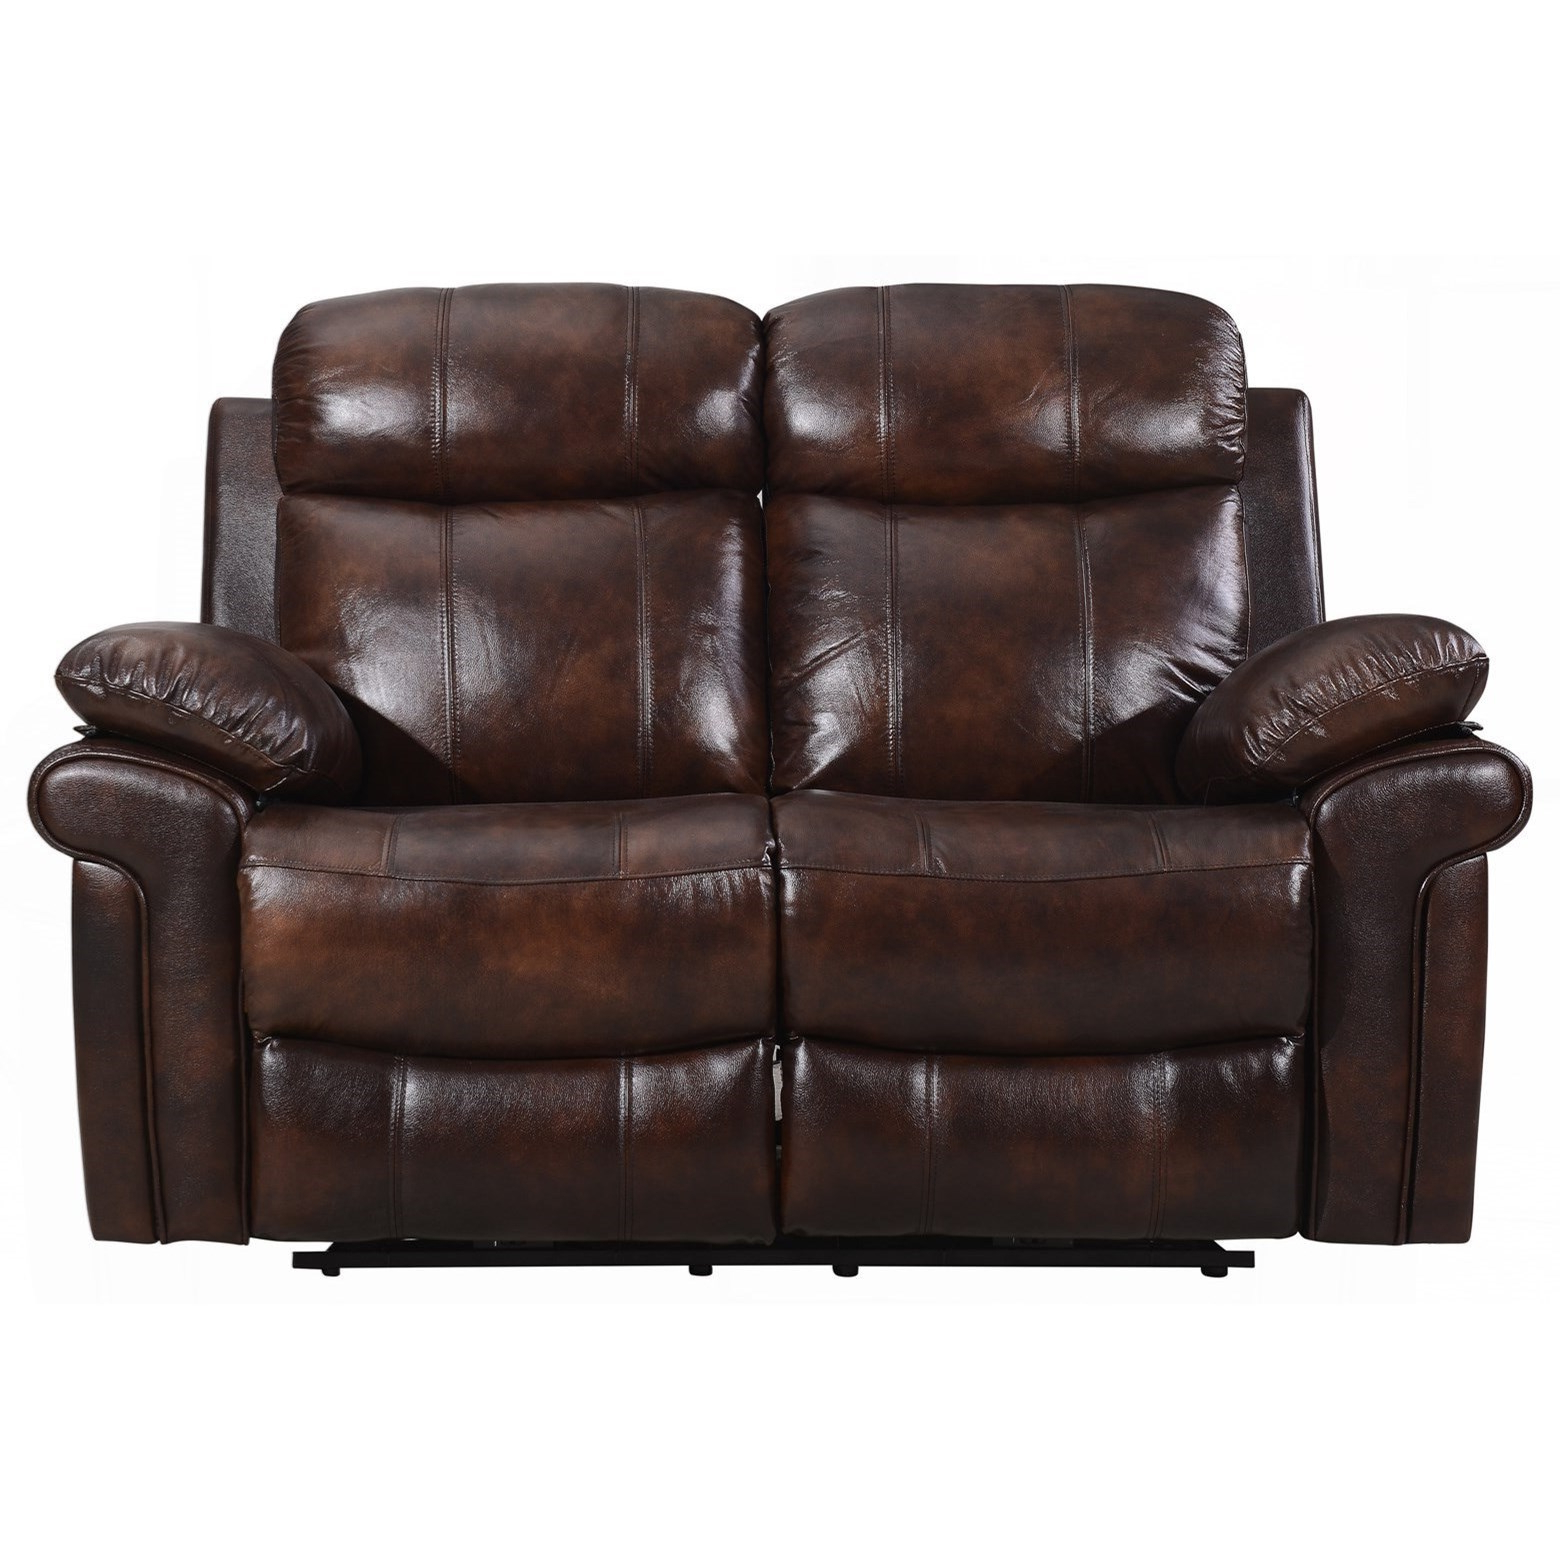 Marcus Chocolate 6 Piece Sectionals With Power Headrest And Usb In Popular Leather And Faux Leather Furniture (View 8 of 20)